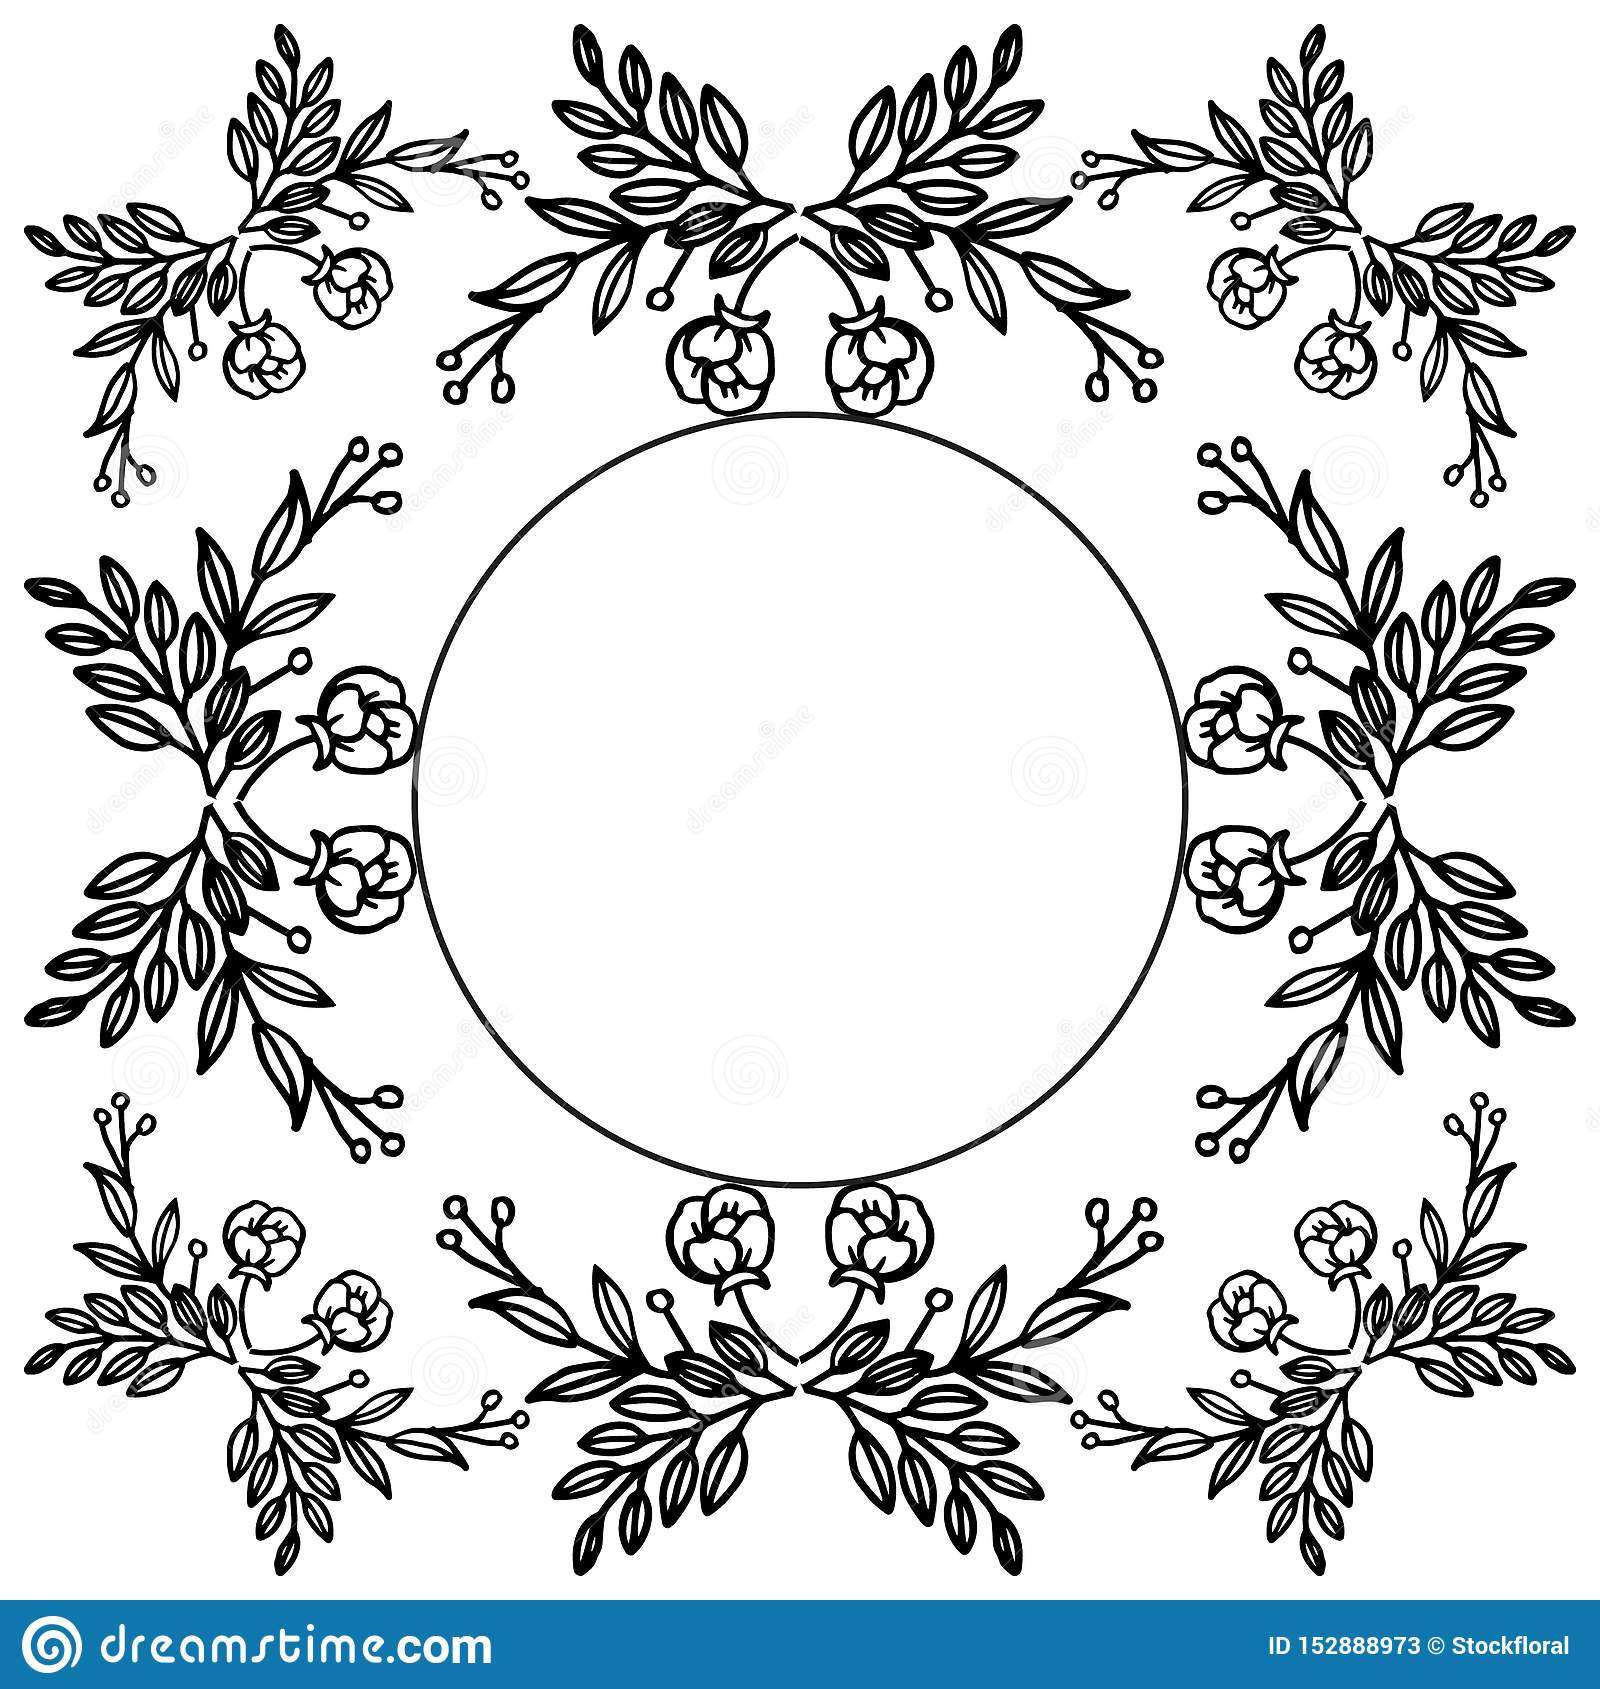 Silhouette of wreath frame, invitation card, banner and poster beautiful. Vector